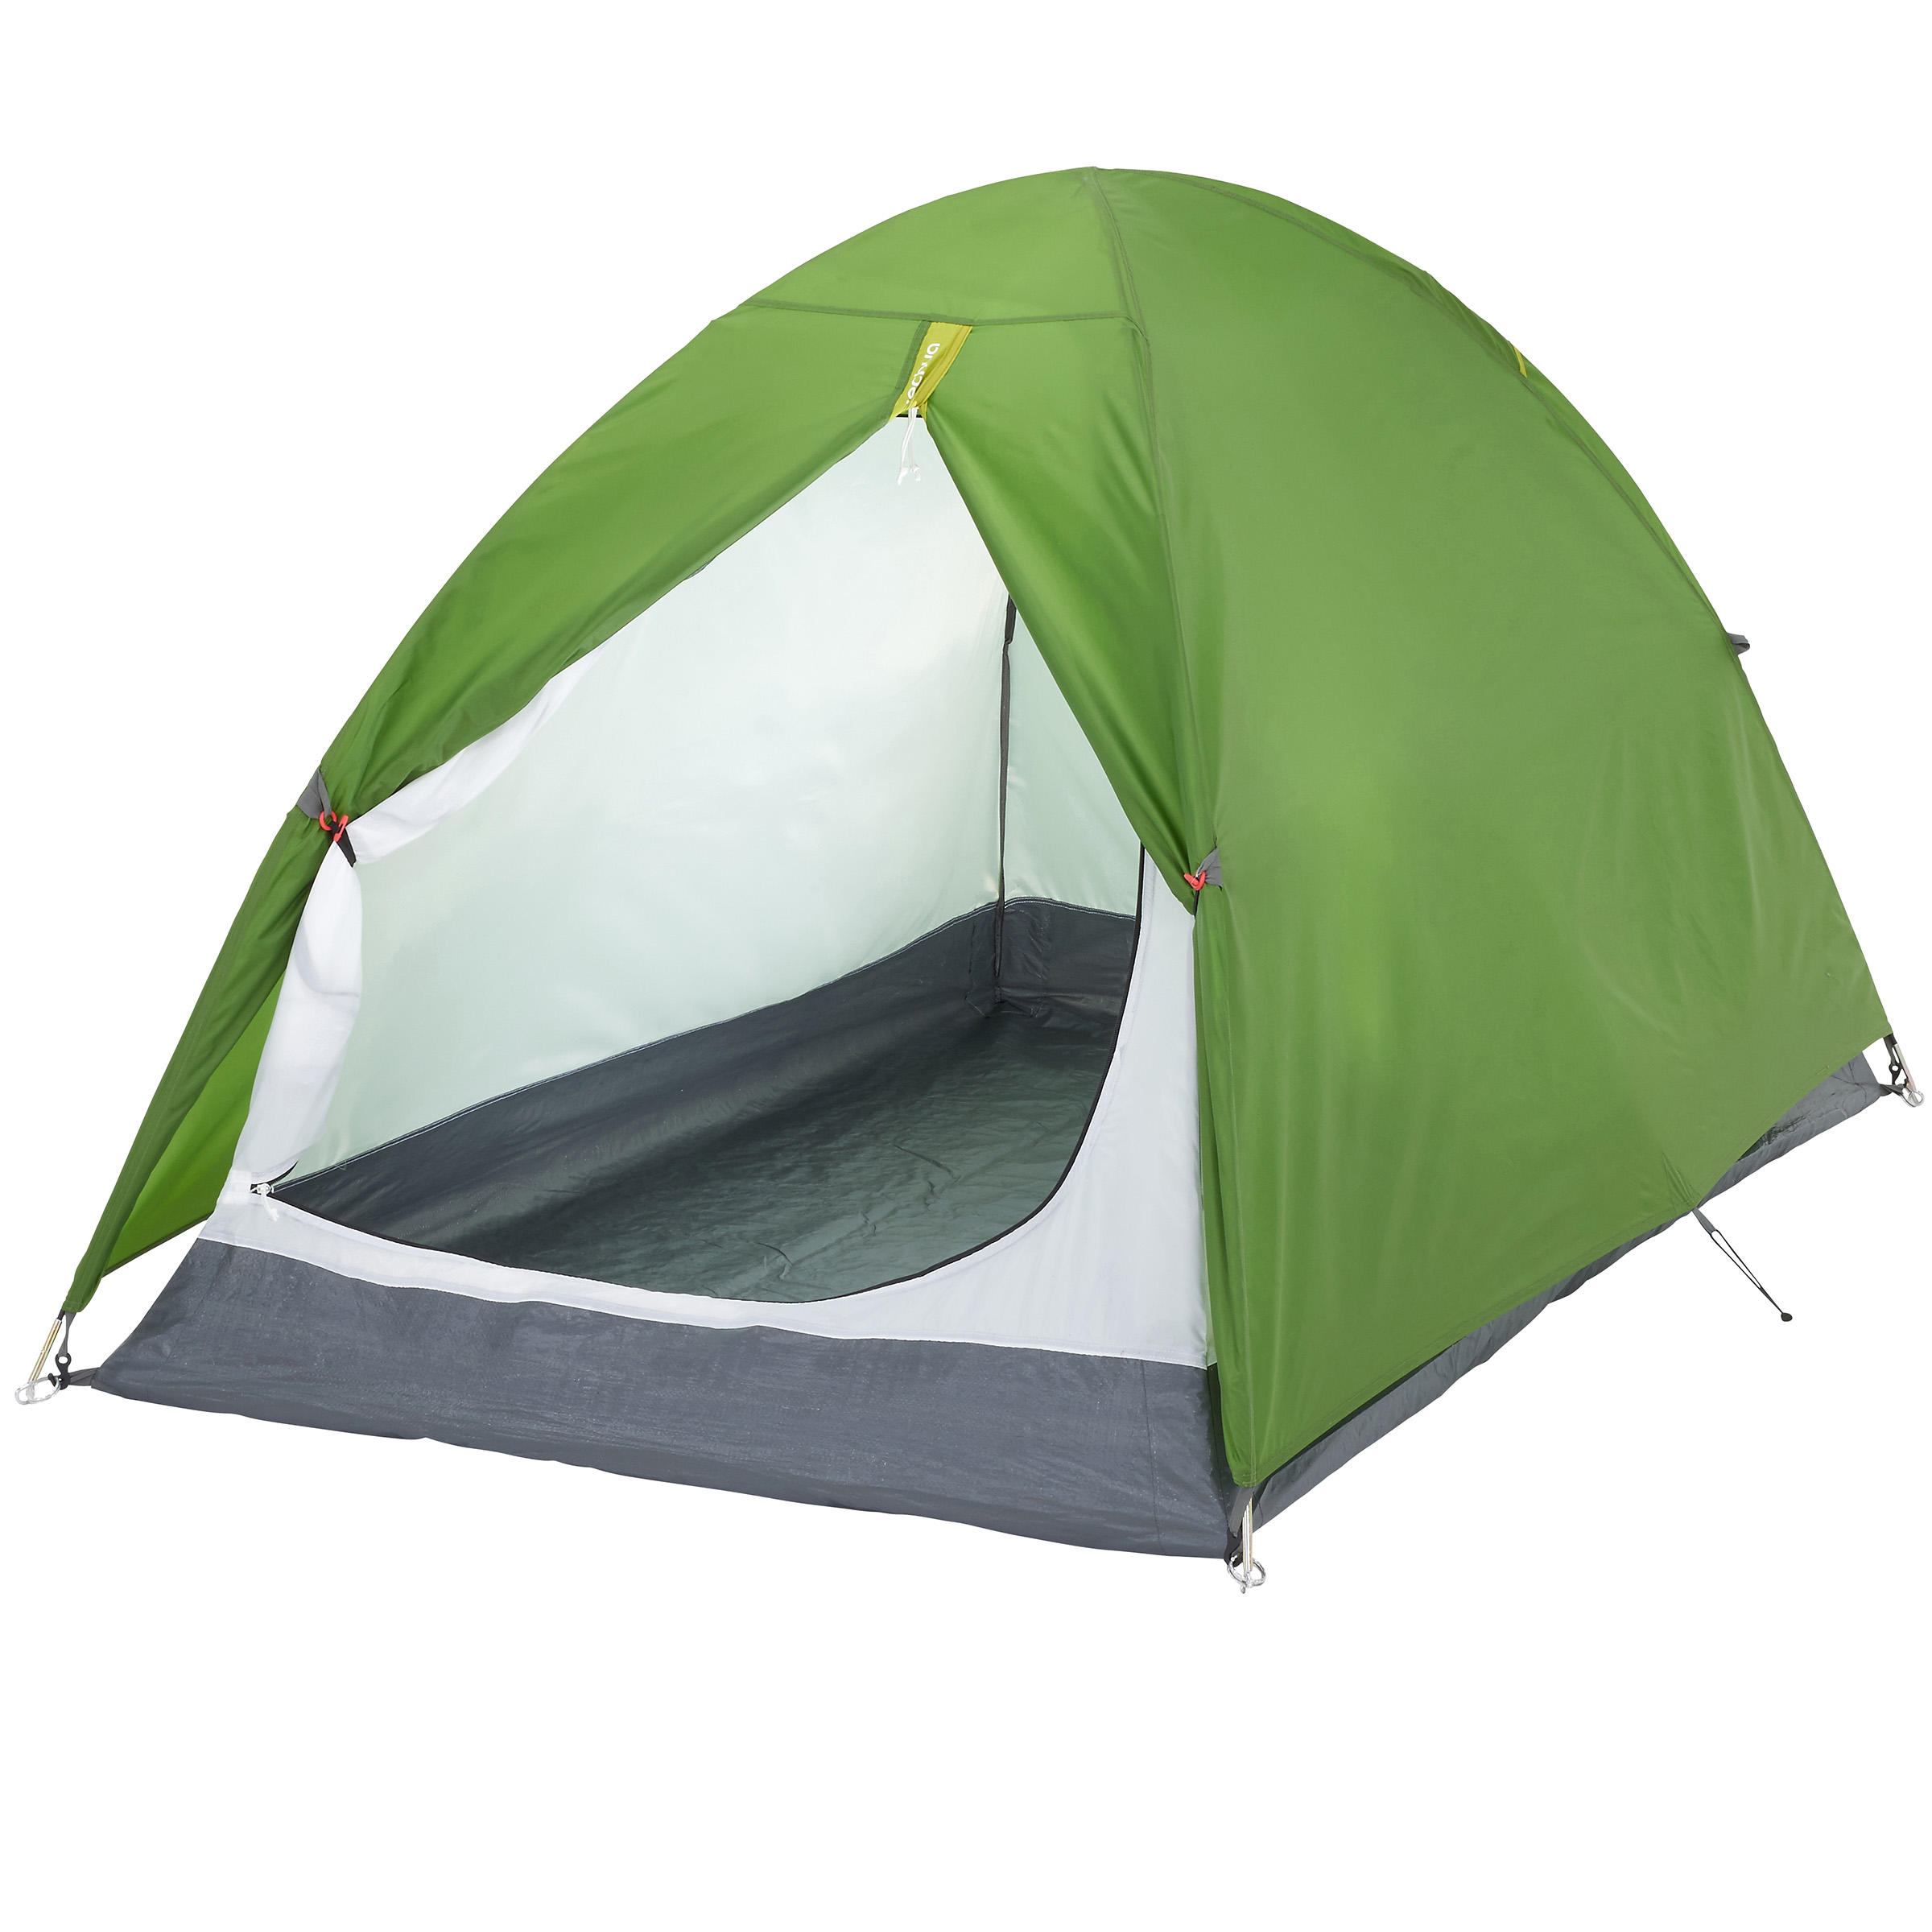 Buy Quechua Tent Online Camping Tent for 2 people Green Decathlon ~ 14011927_Camping Liegestuhl Decathlon